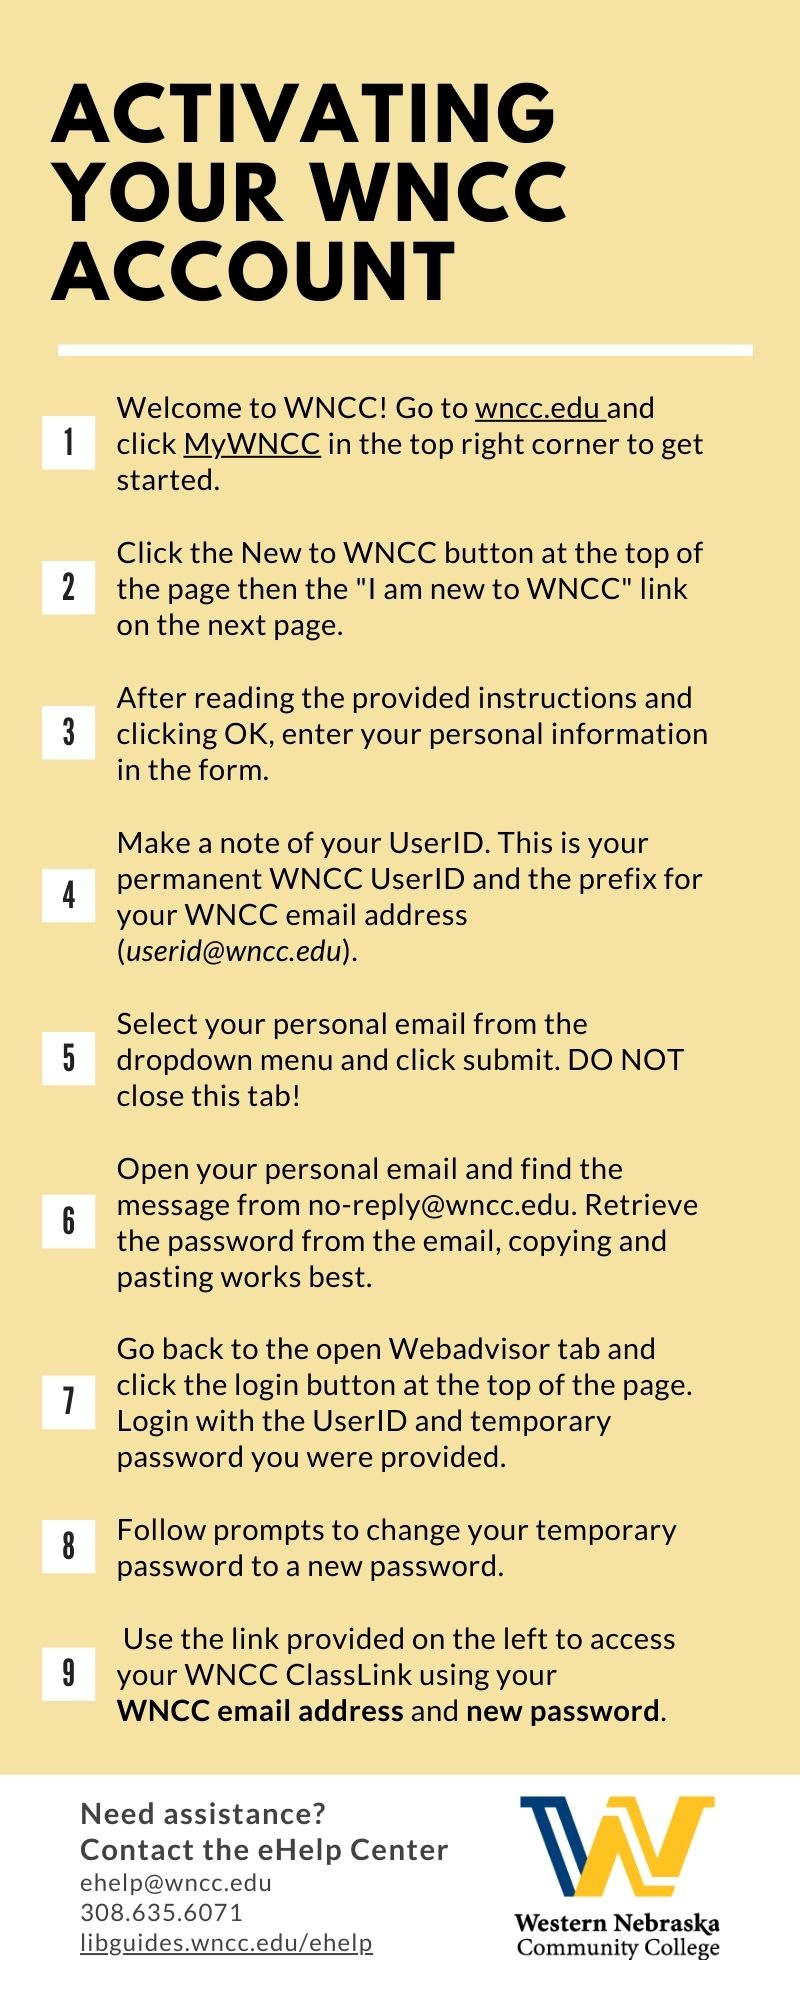 Activating your WNCC Account Instructions Image